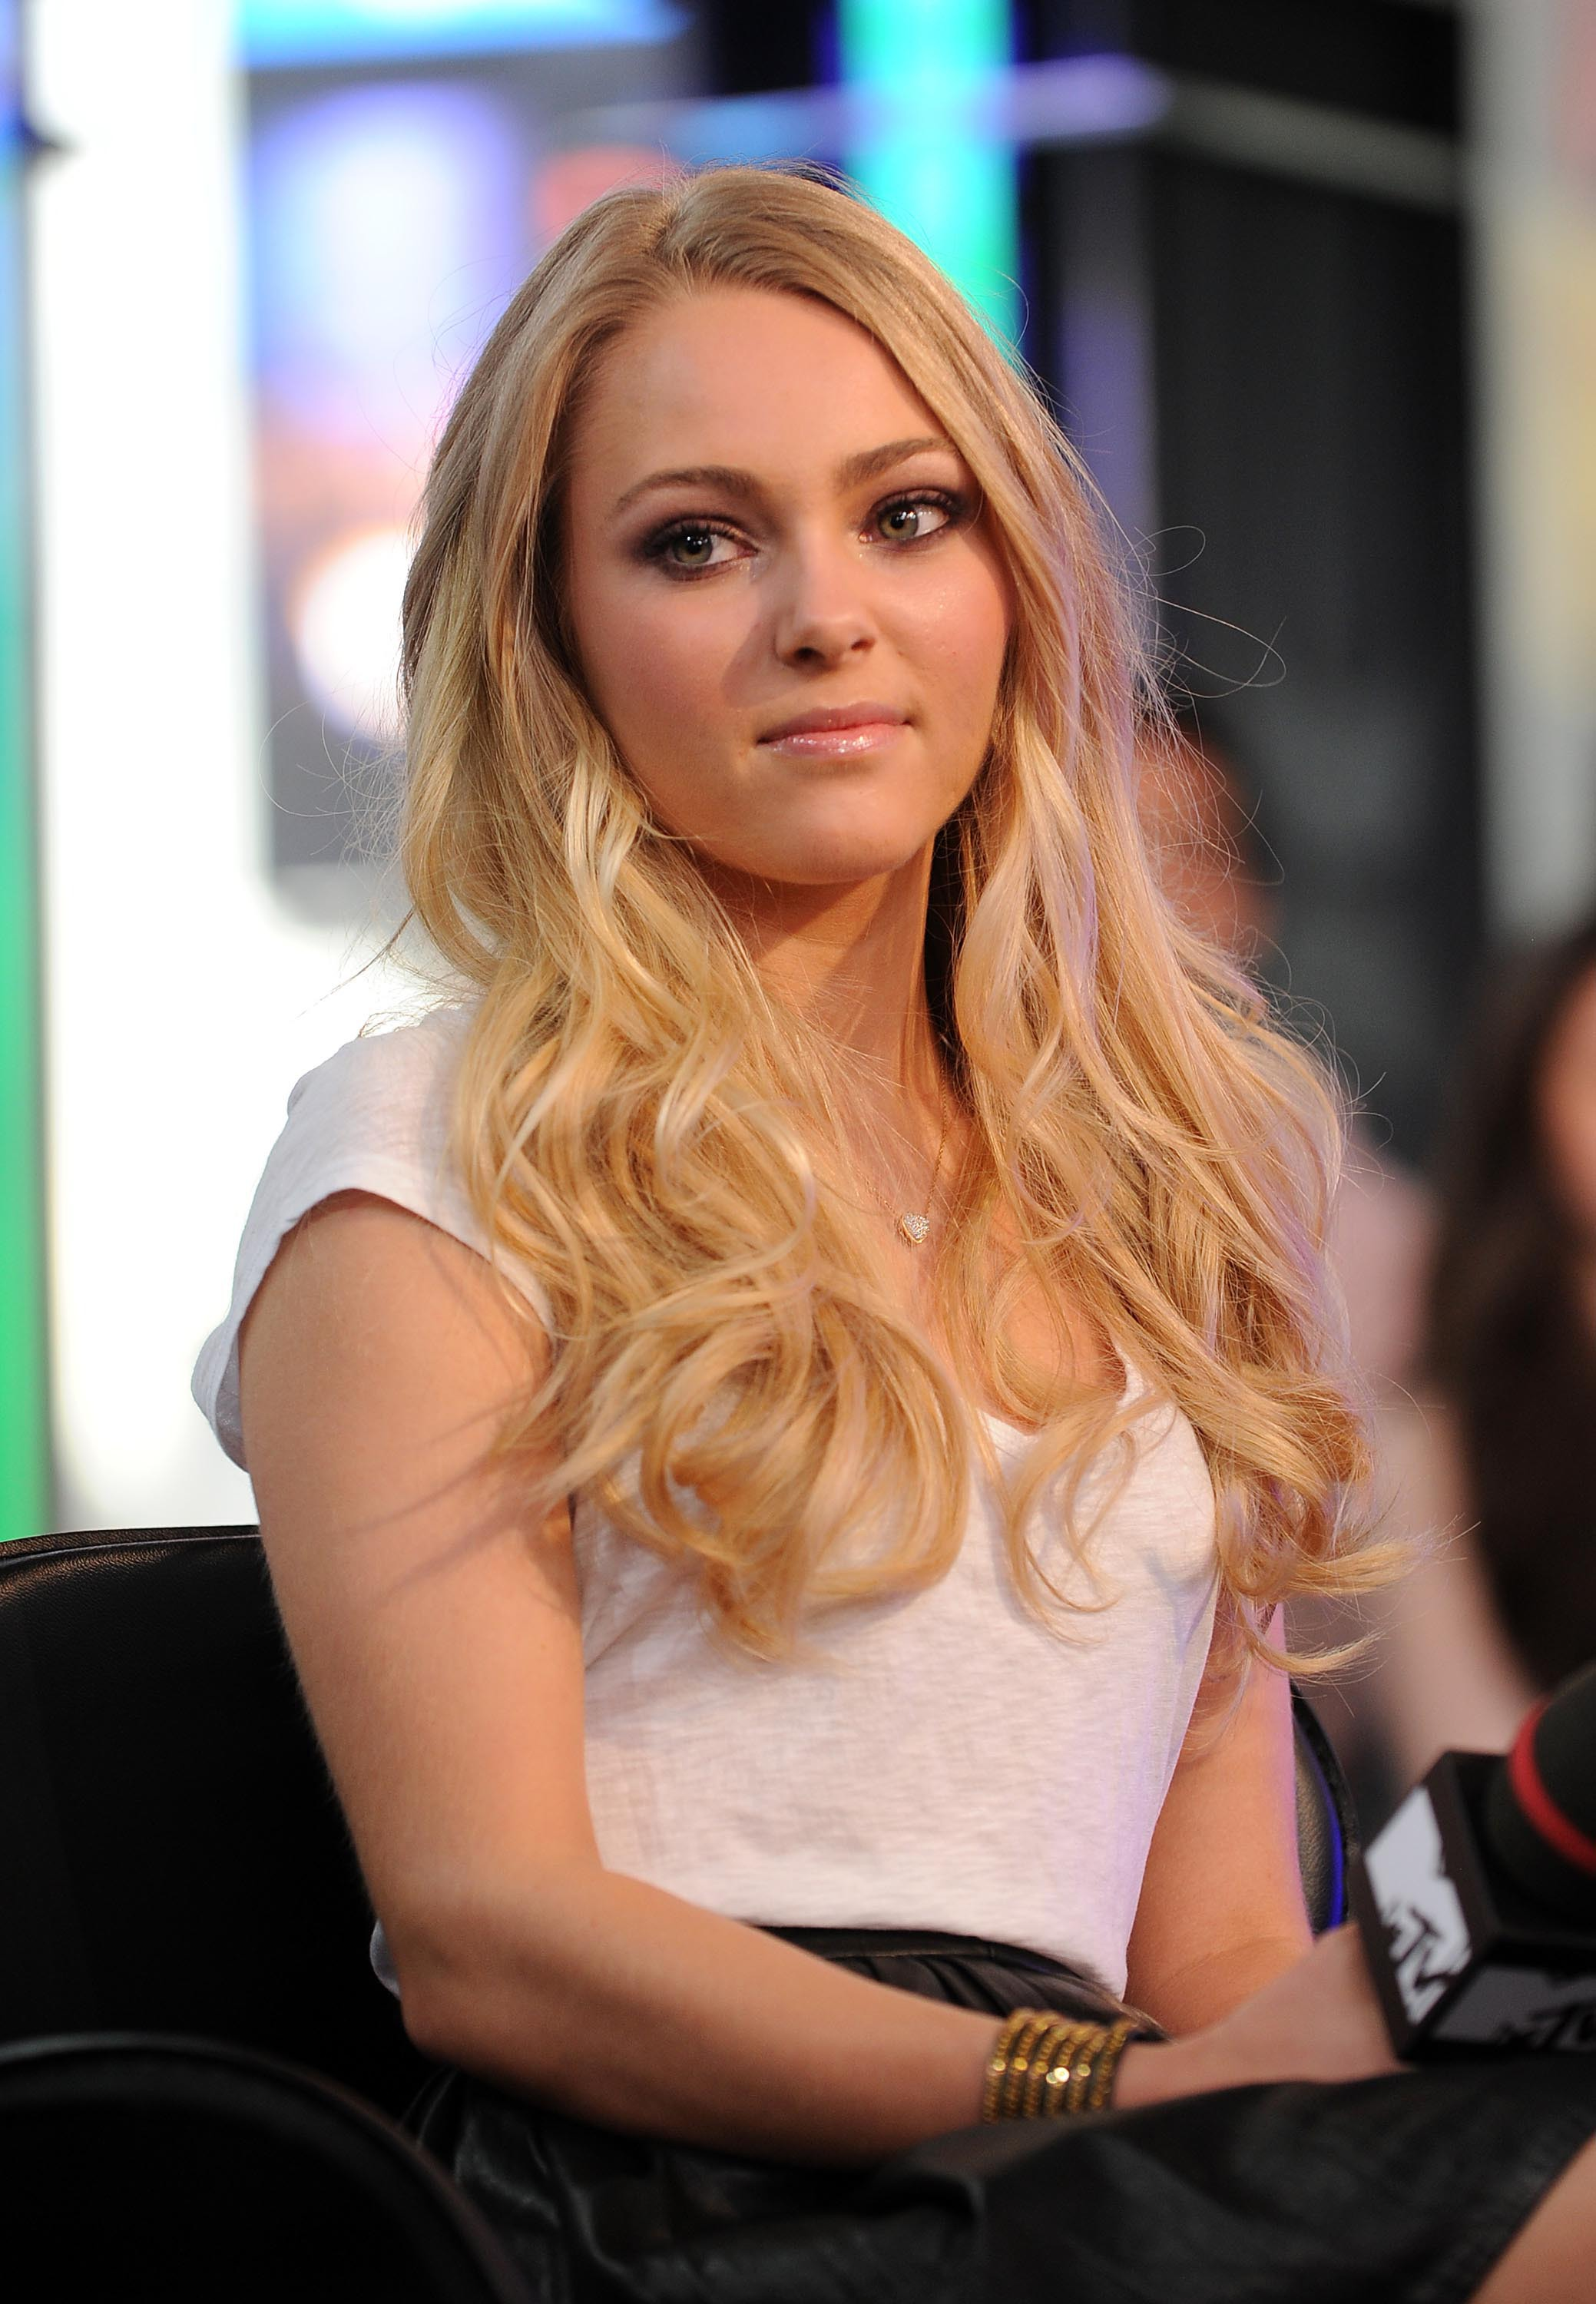 Will always anna sophia robb upskirt love the